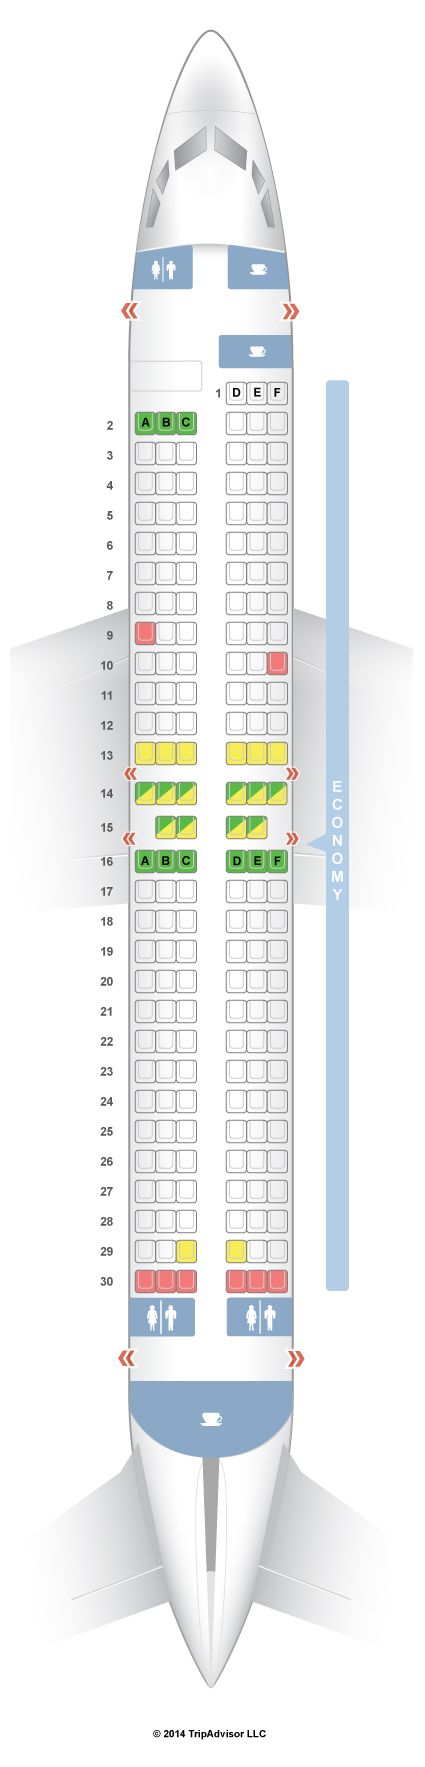 Seatguru Seat Map Southwest Boeing 737 800 738 Seatguru Seatguru Southwest Airlines Airline Seats